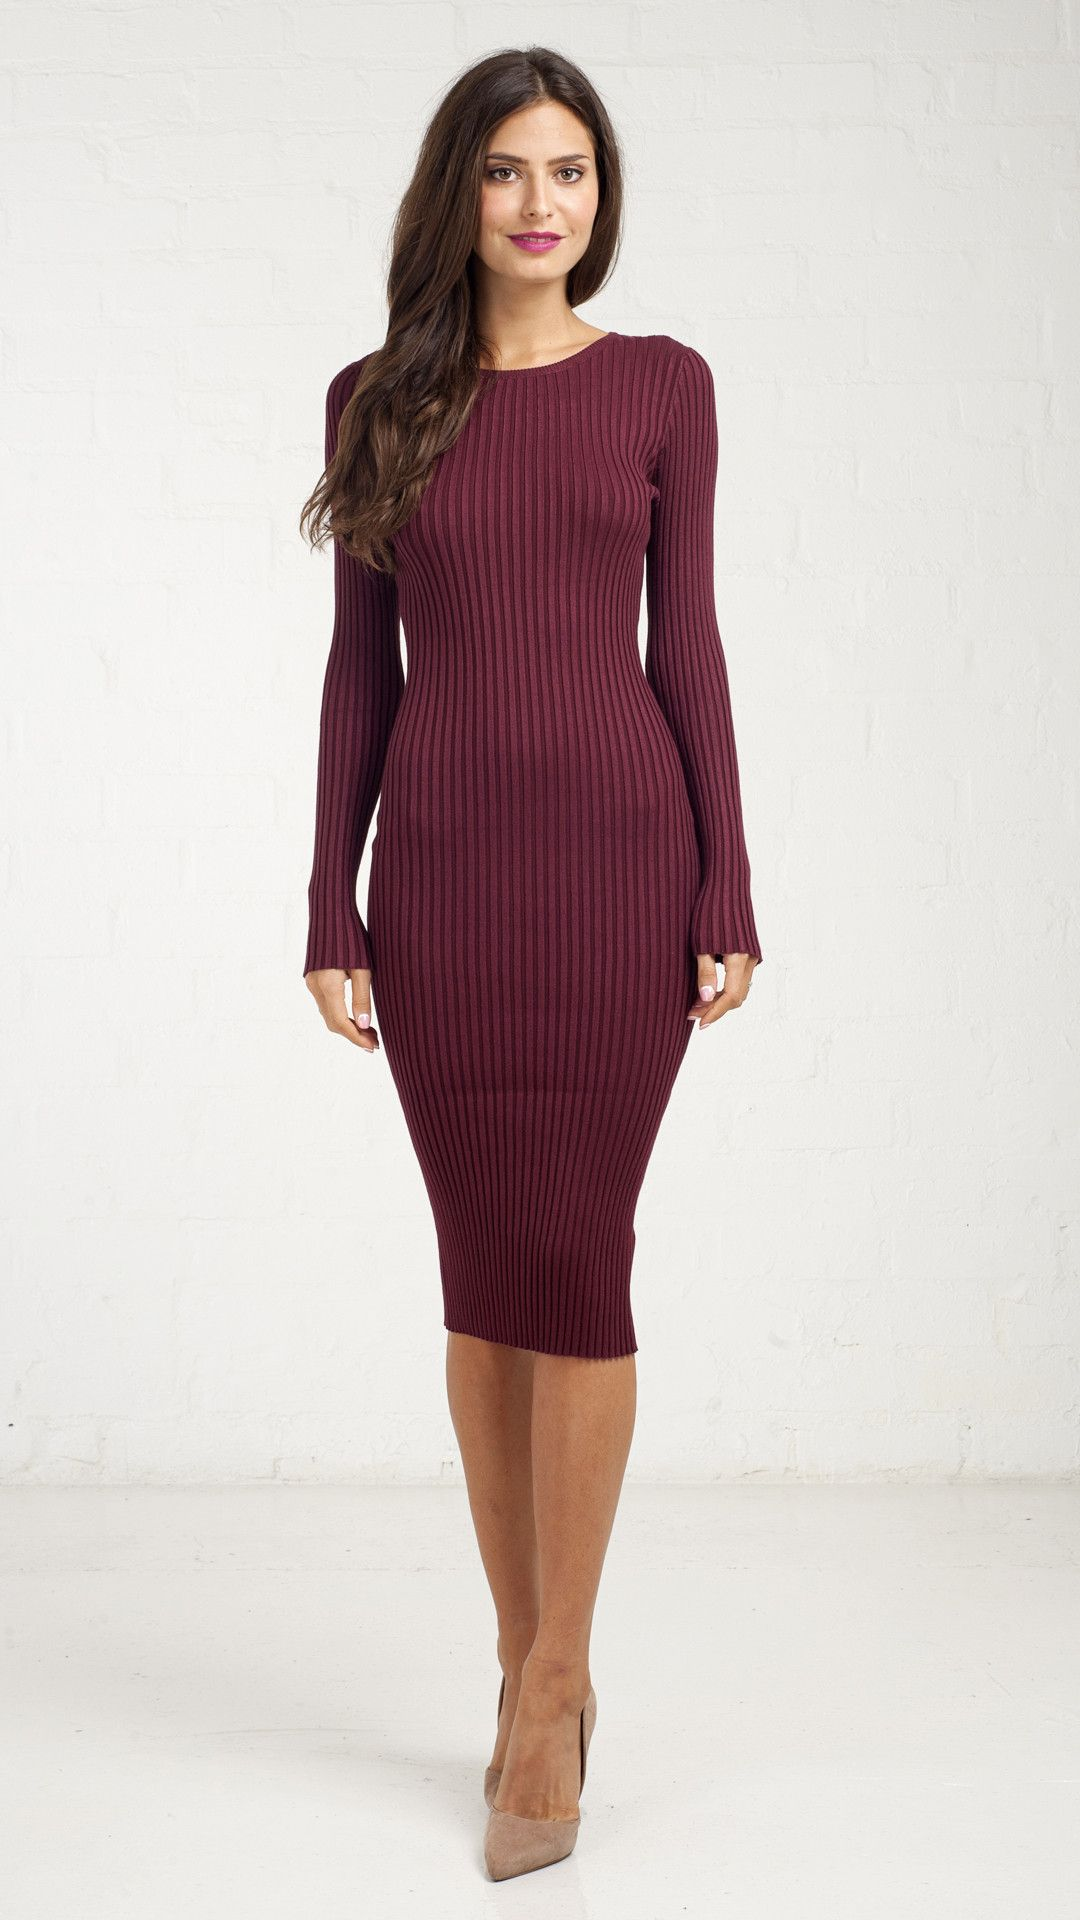 Fitted Ribbed Long Sleeve Pencil Dress - Burgundy | Dress to ...